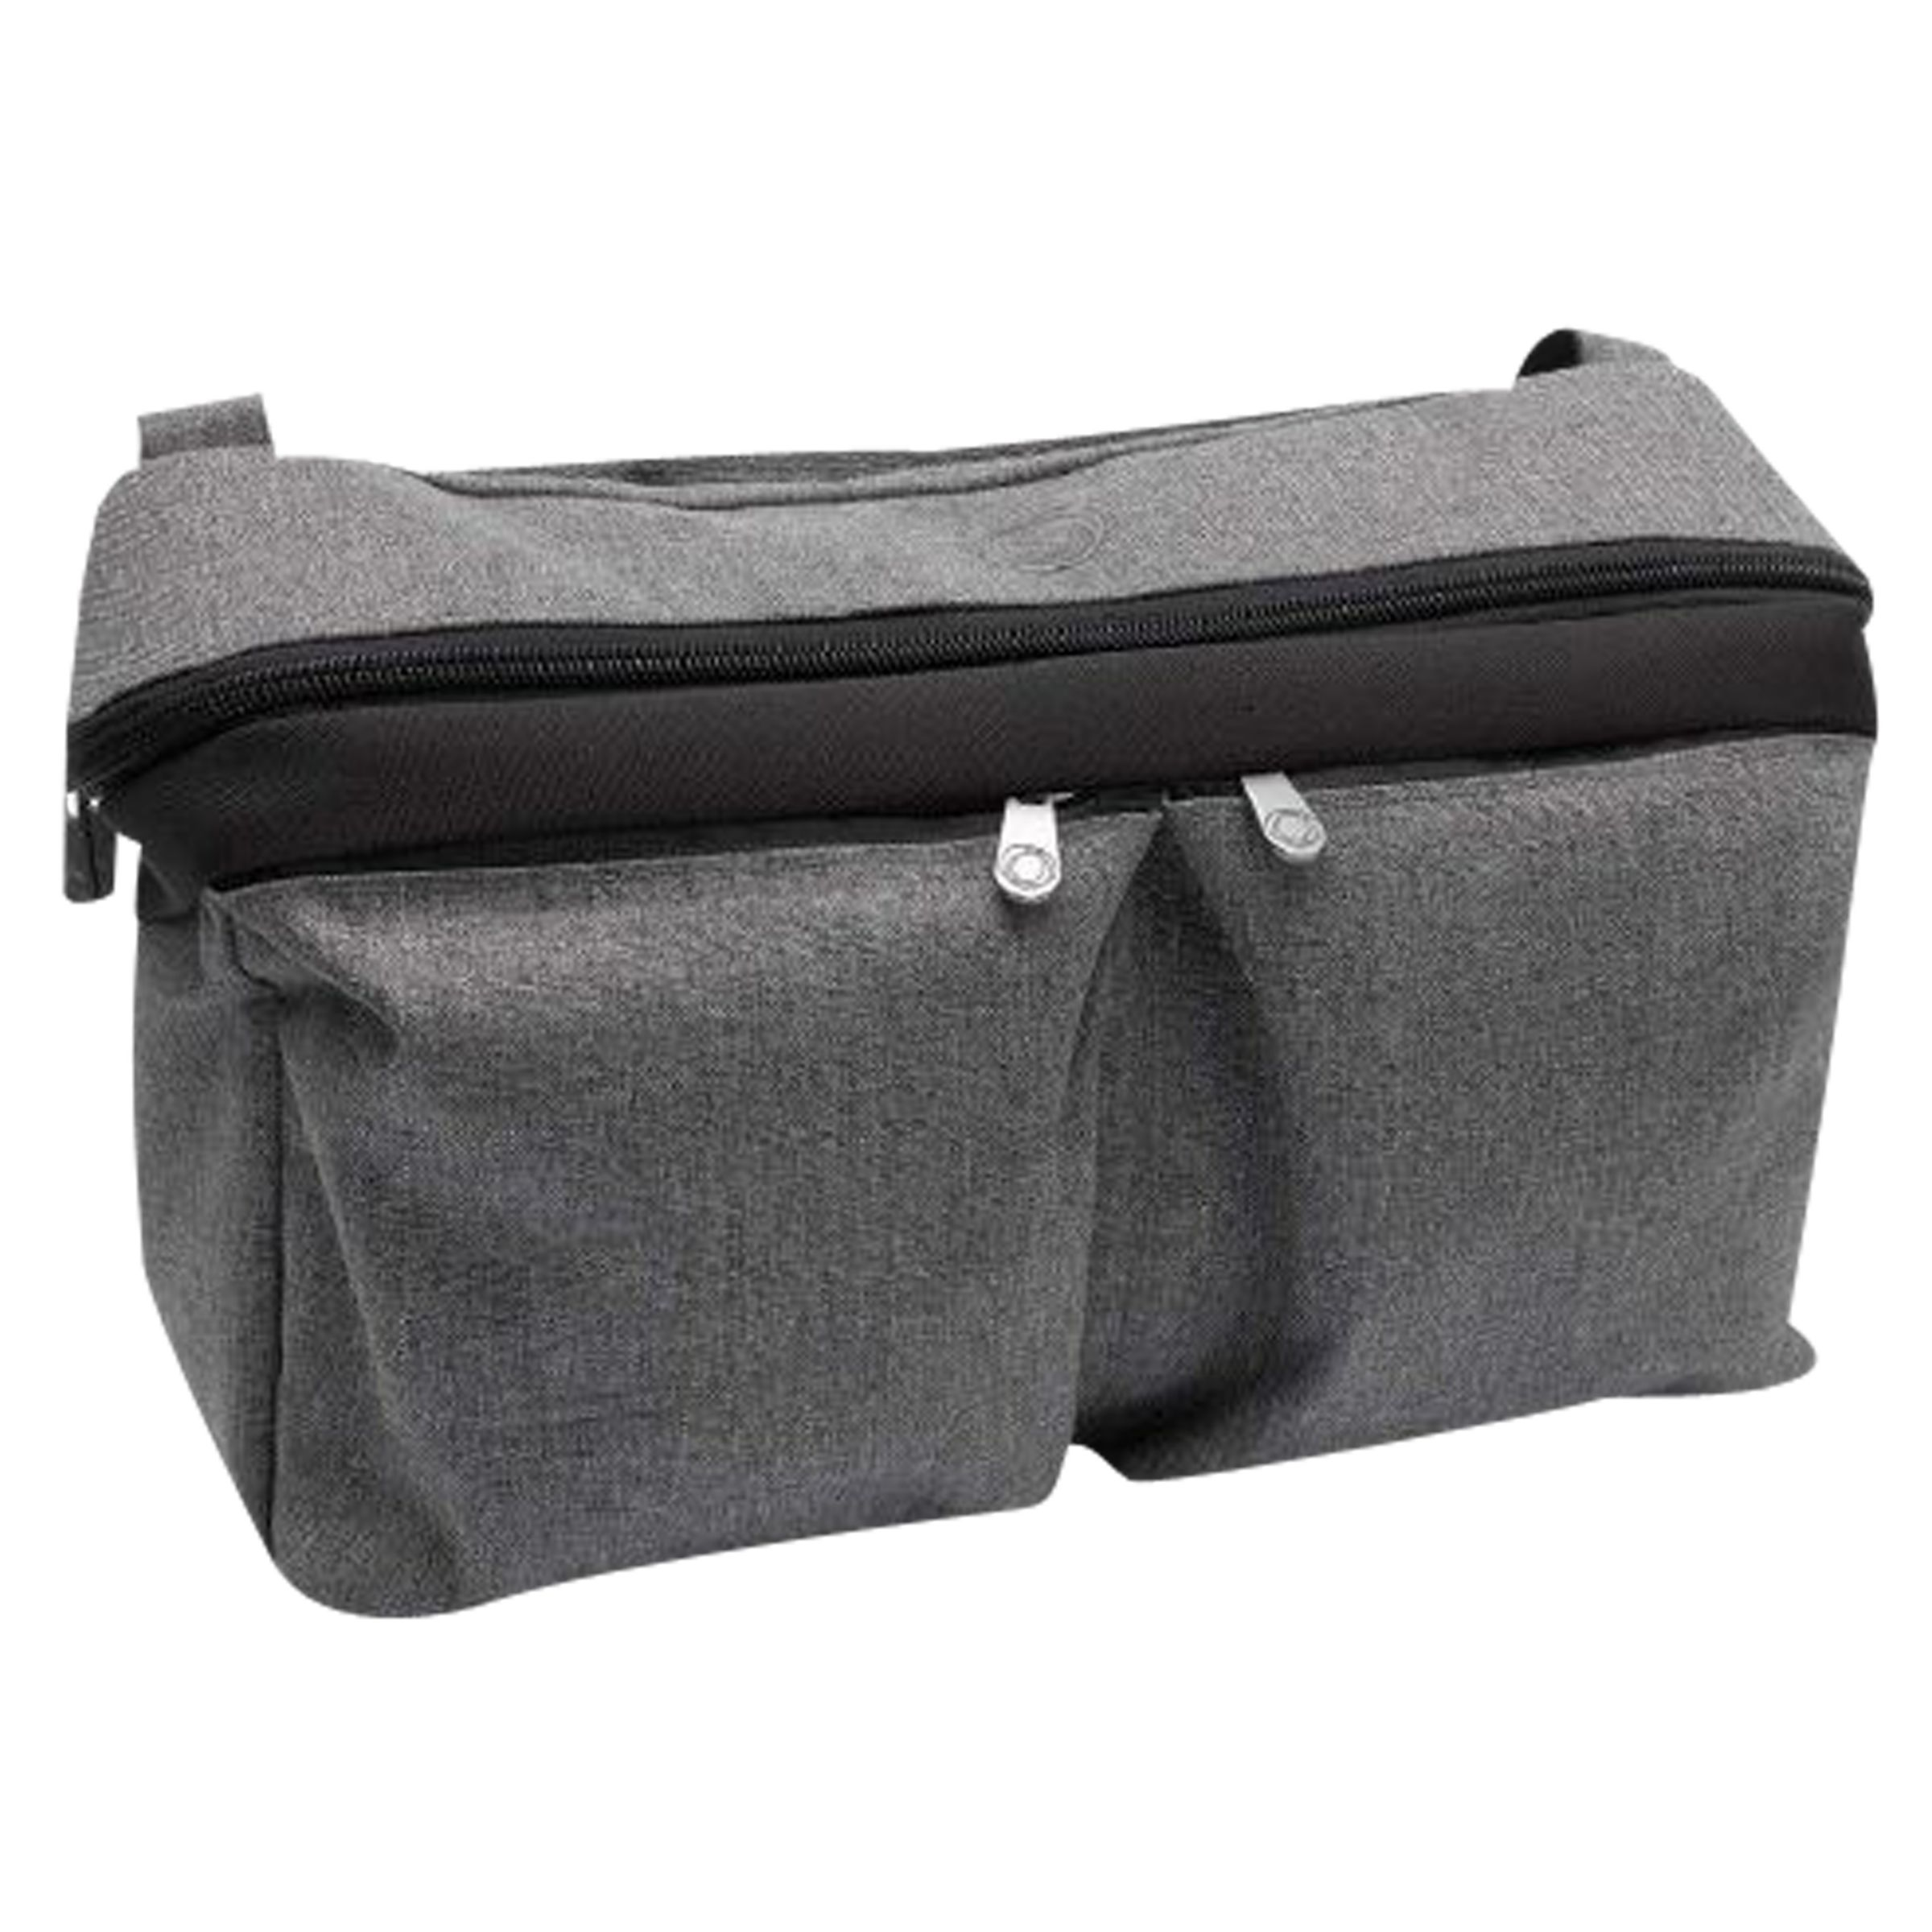 Bugaboo Bugaboo Changing Bag Organiser, Grey